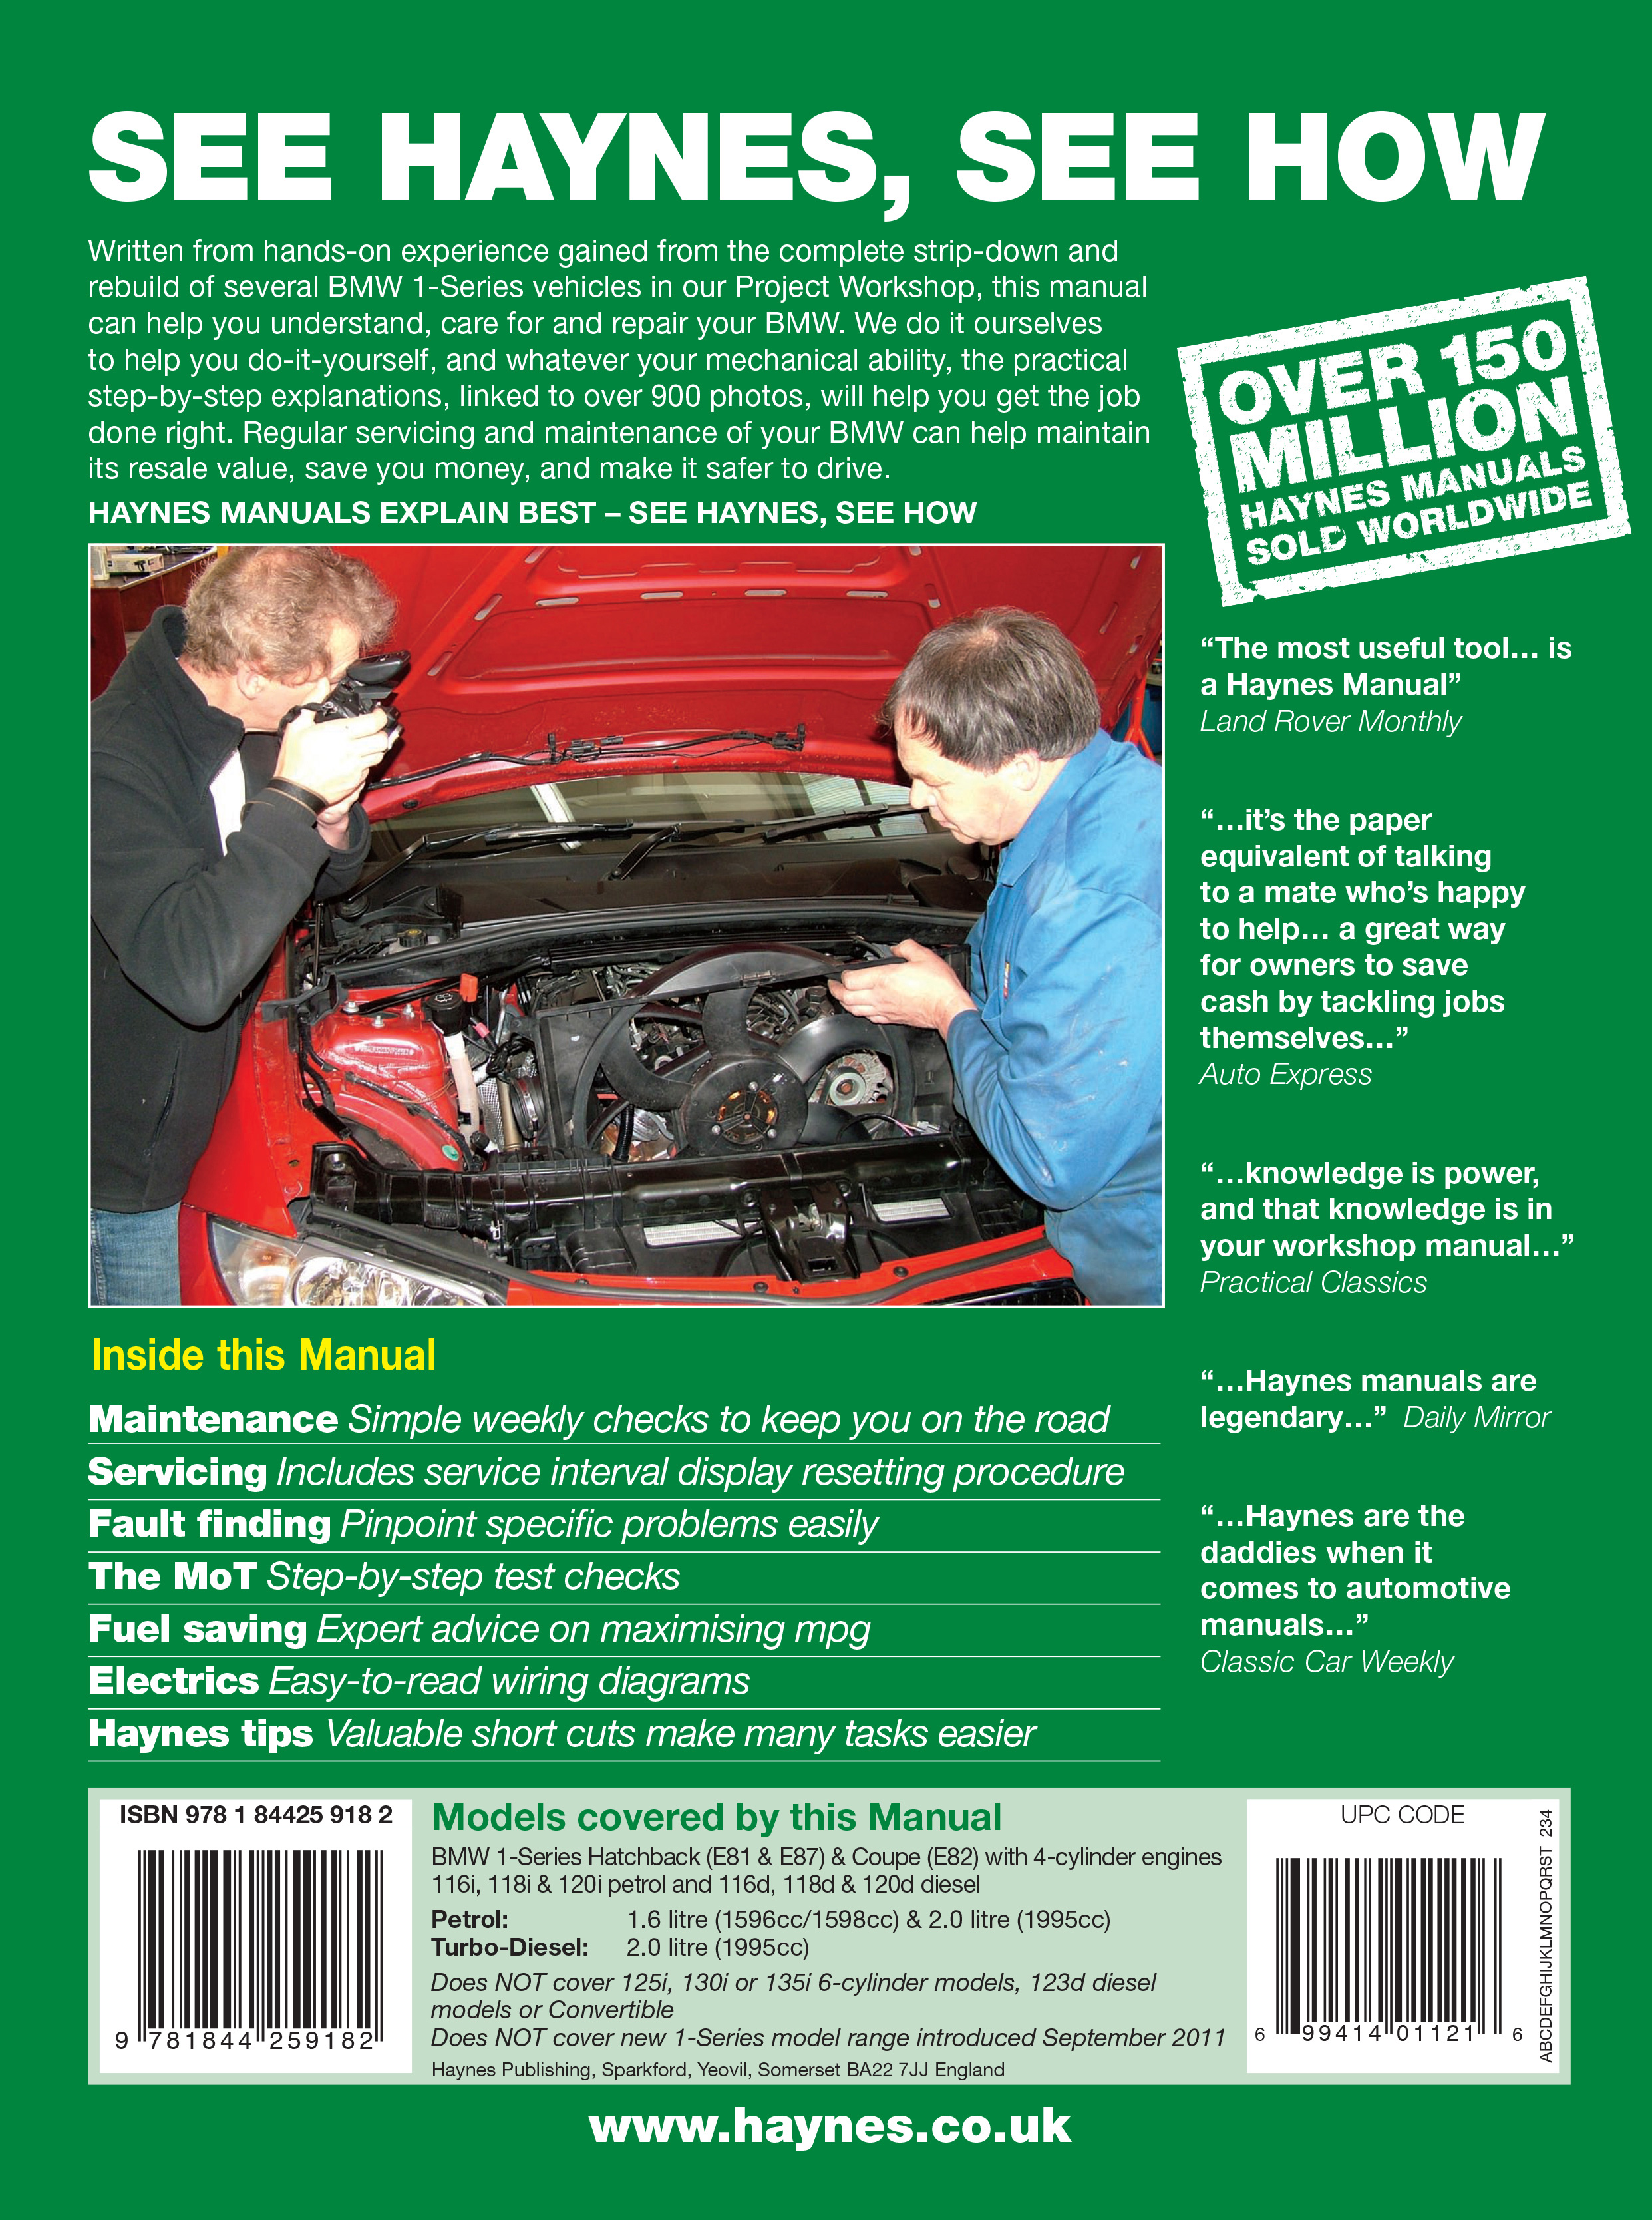 Bmw e81 & e87 1 series owners manual owners guide handbook.